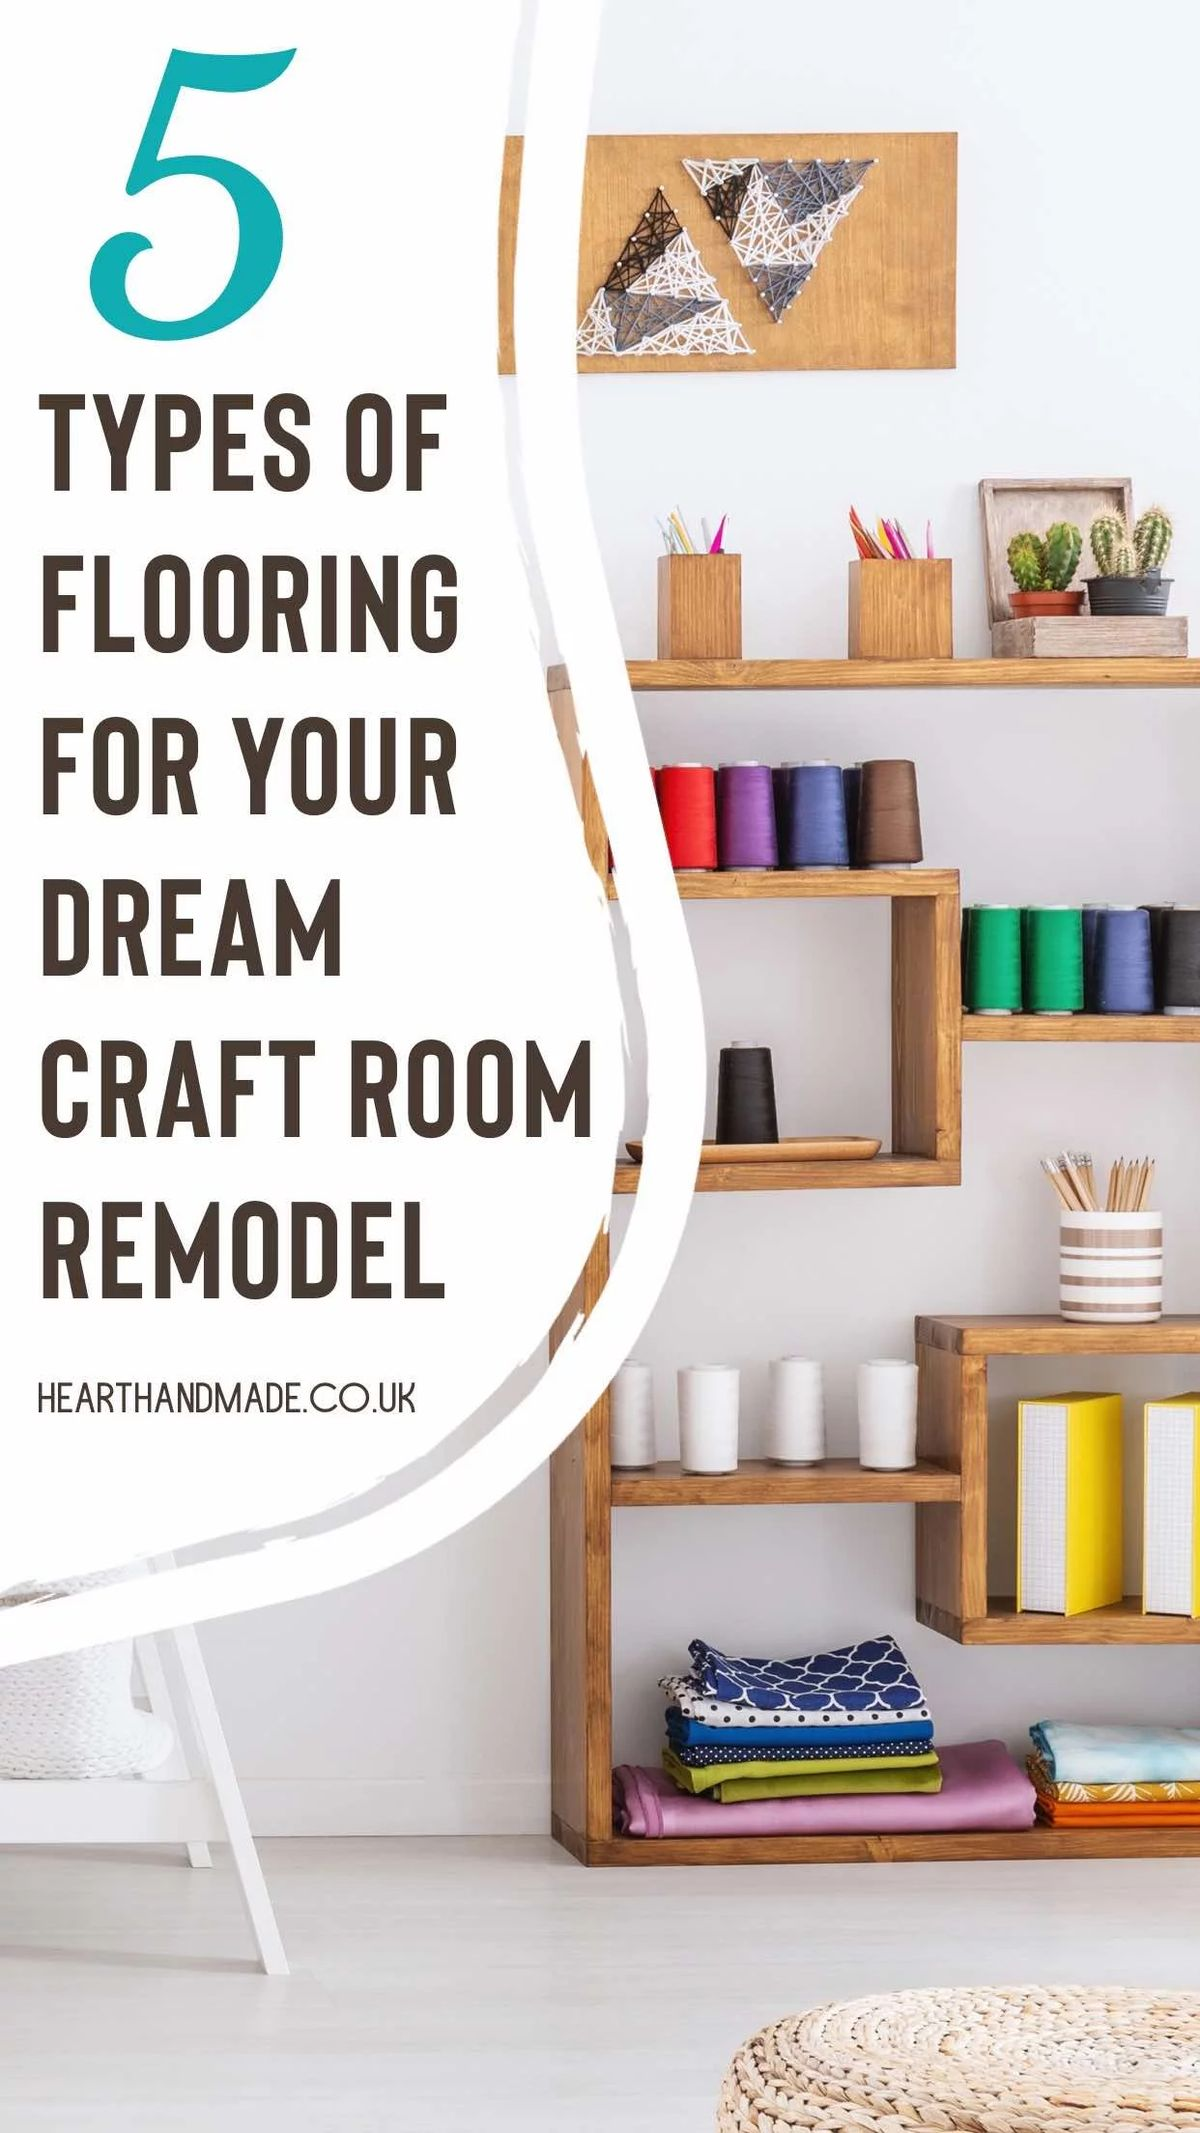 5 Types Of Flooring For Your Dream Craft Room Remodel